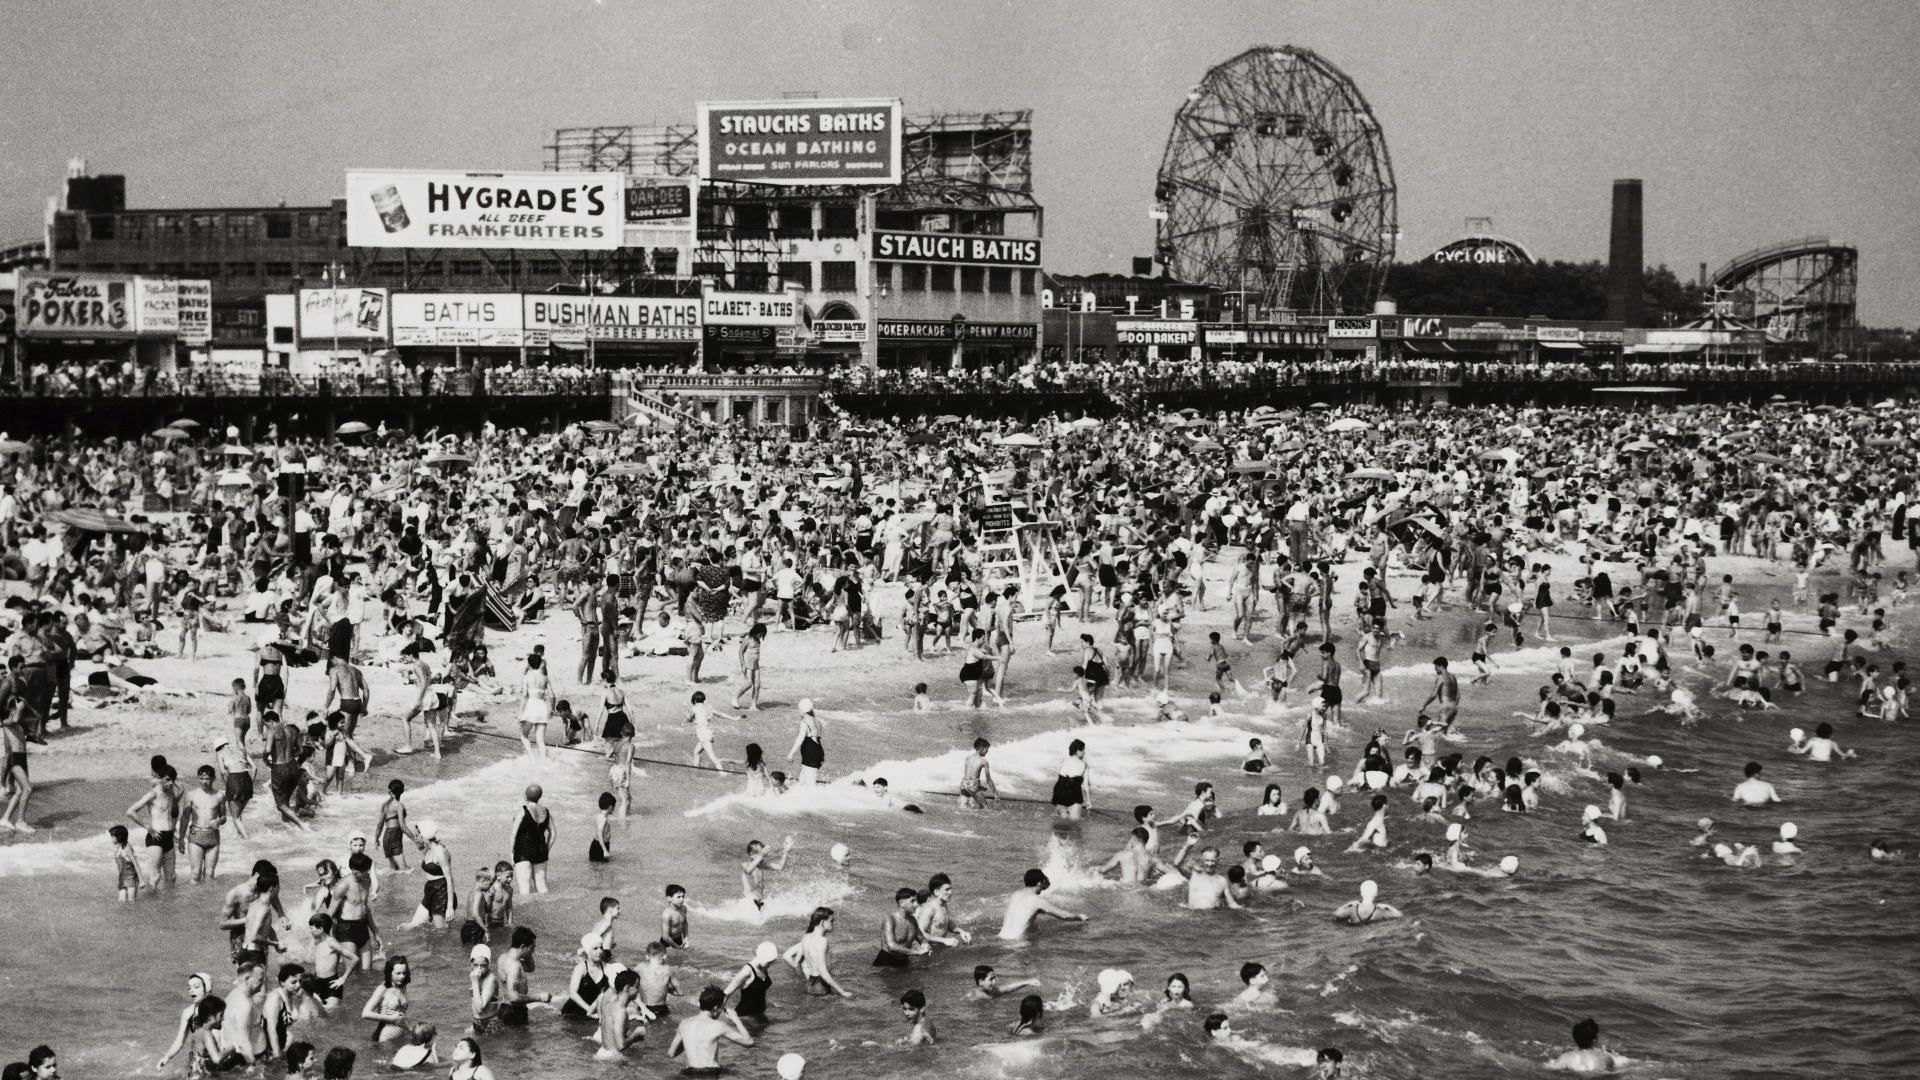 Coney Island Wallpaper 43 HD Coney Island Wallpapers 1920x1080